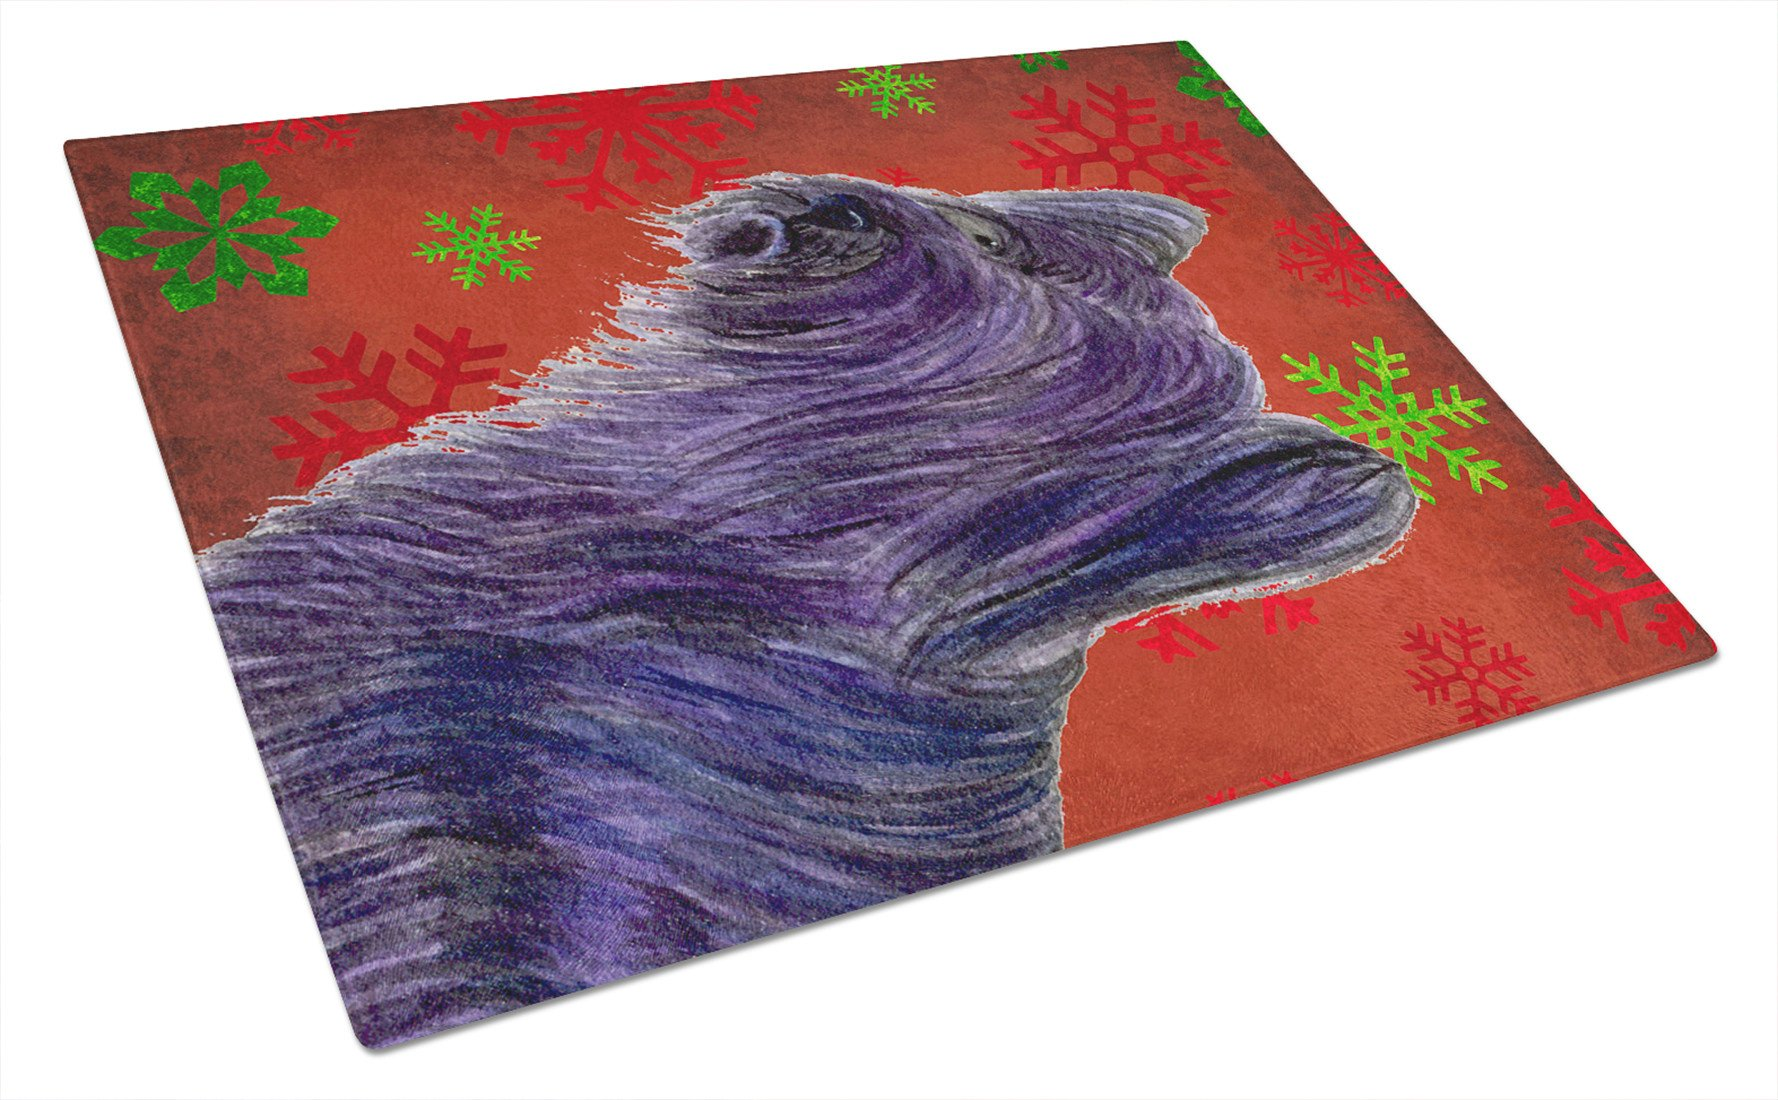 Buy this Skye Terrier Red and Green Snowflakes  Christmas Glass Cutting Board Large